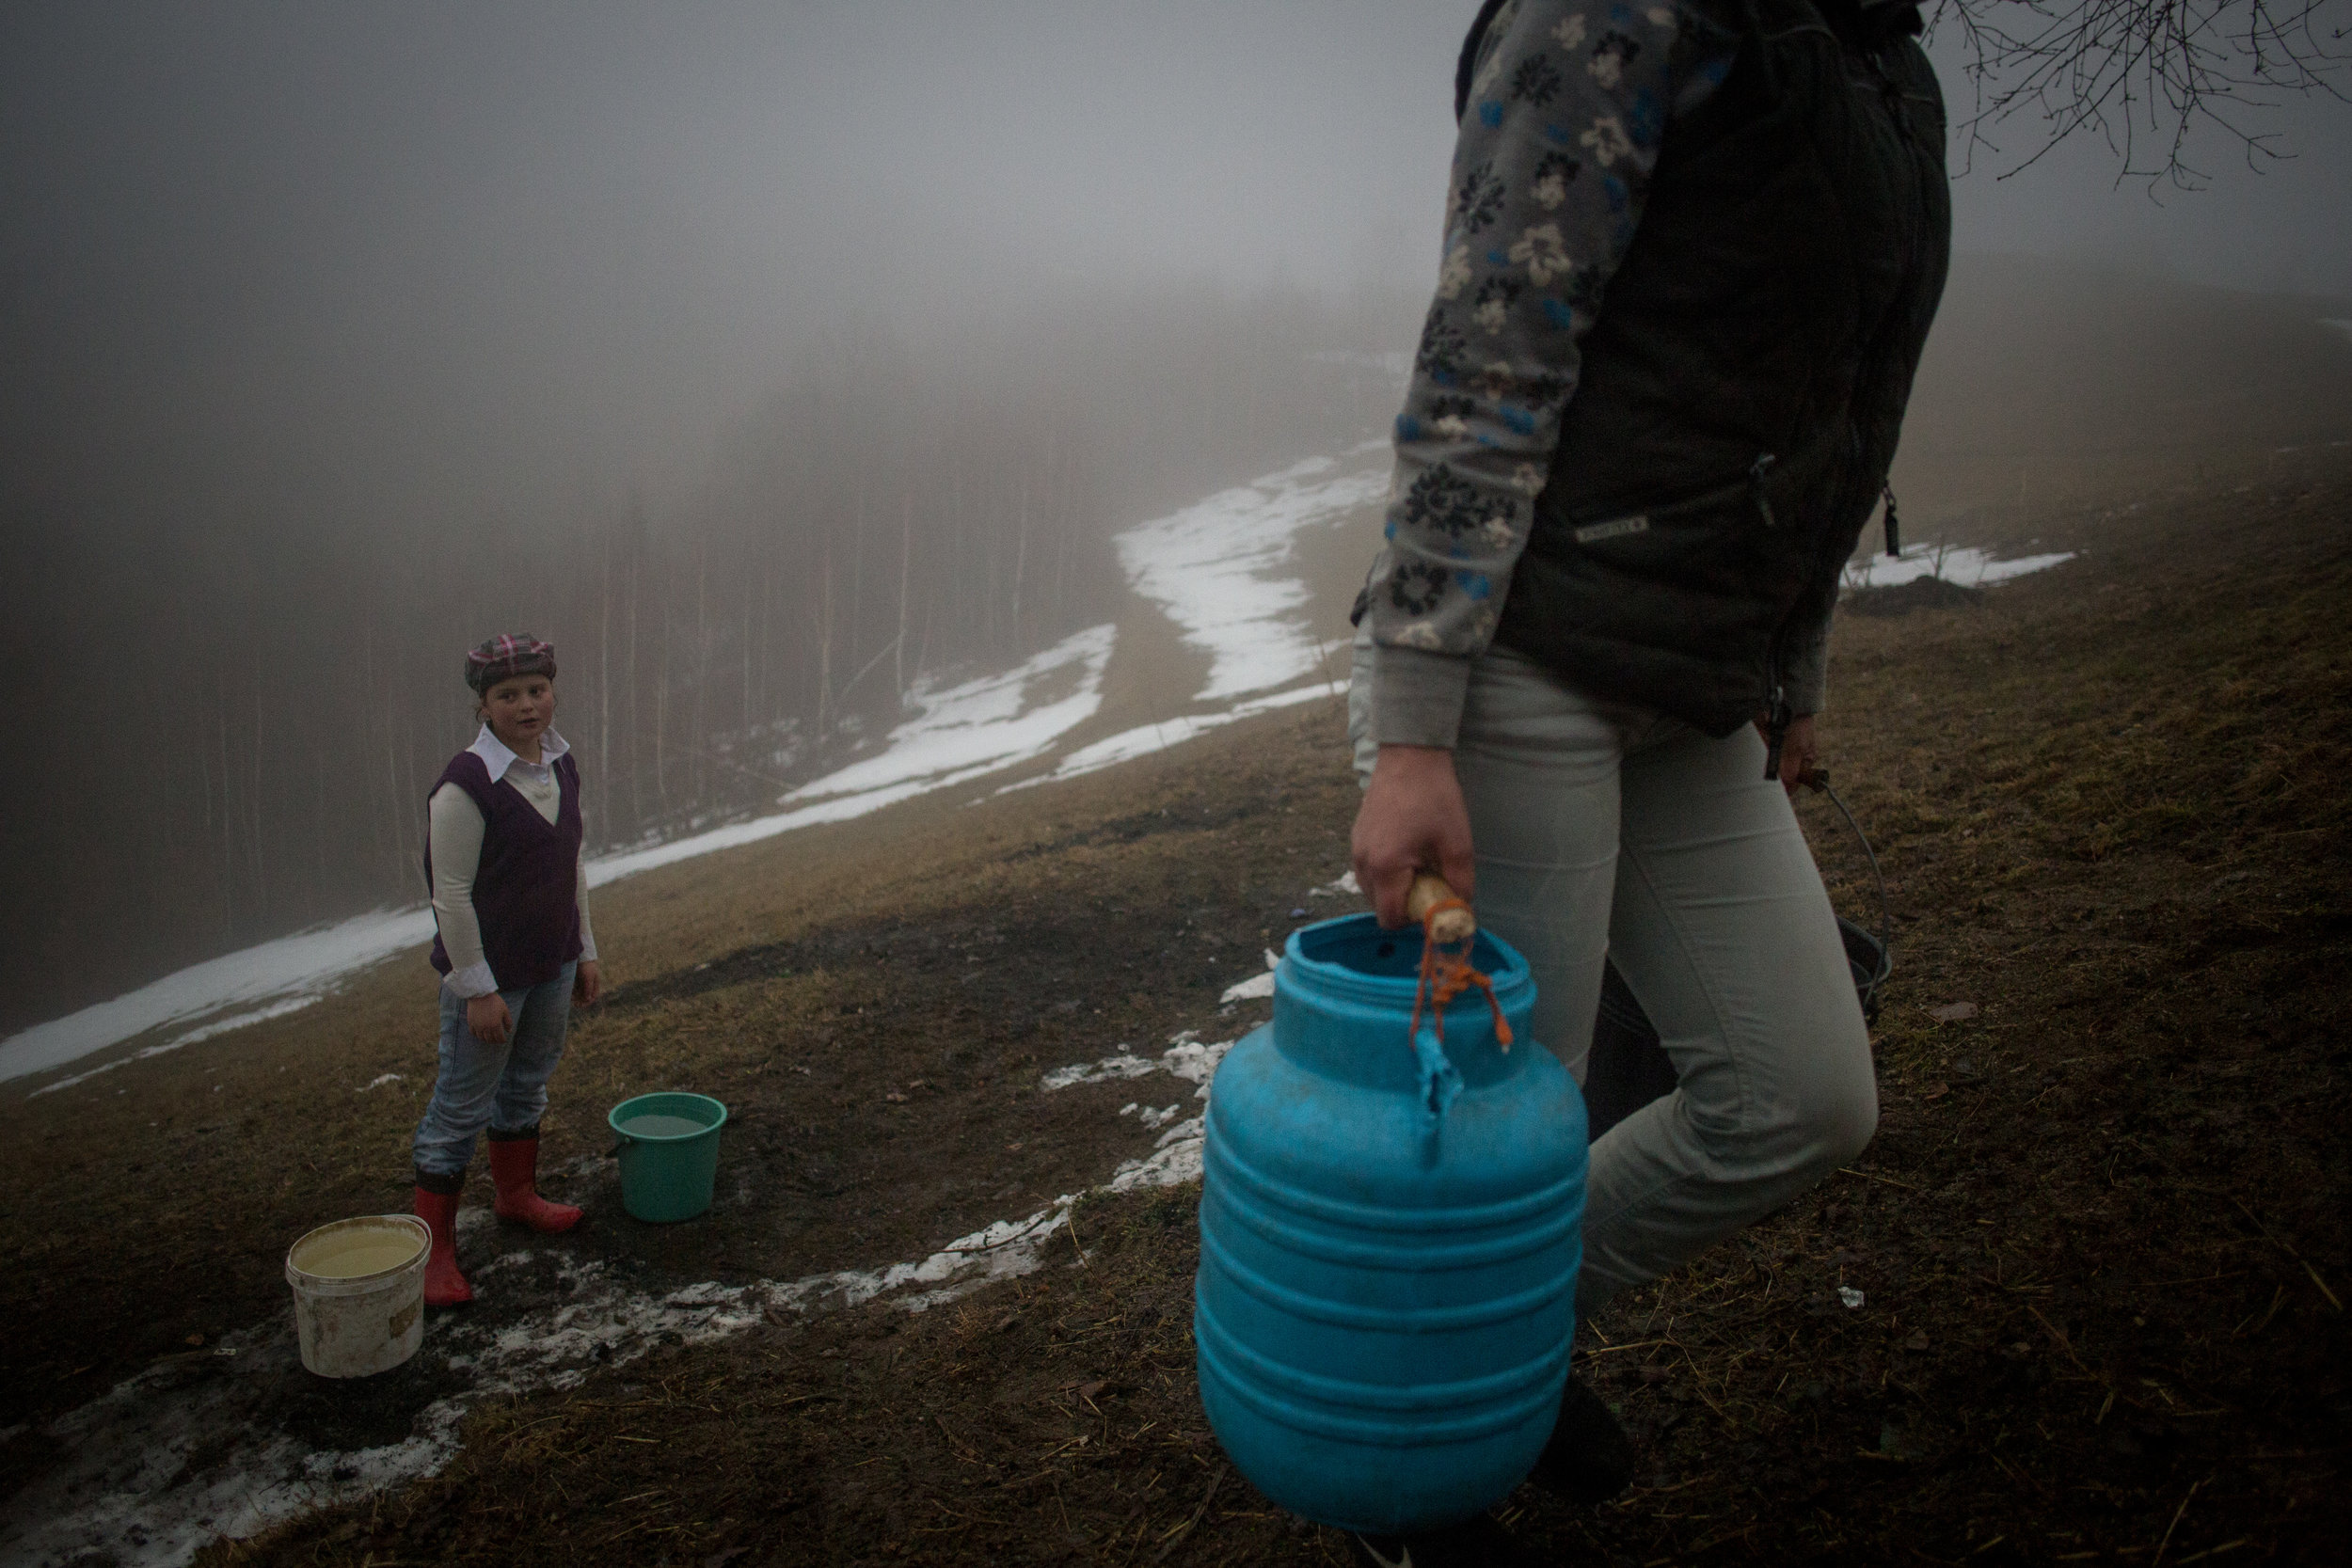 HOLBAV • No electricity means no running water for the Stoichecius. A single mom, Ileana (33) gets help from her daughters Cristina (13), Claudia (9) and Mariana (7).